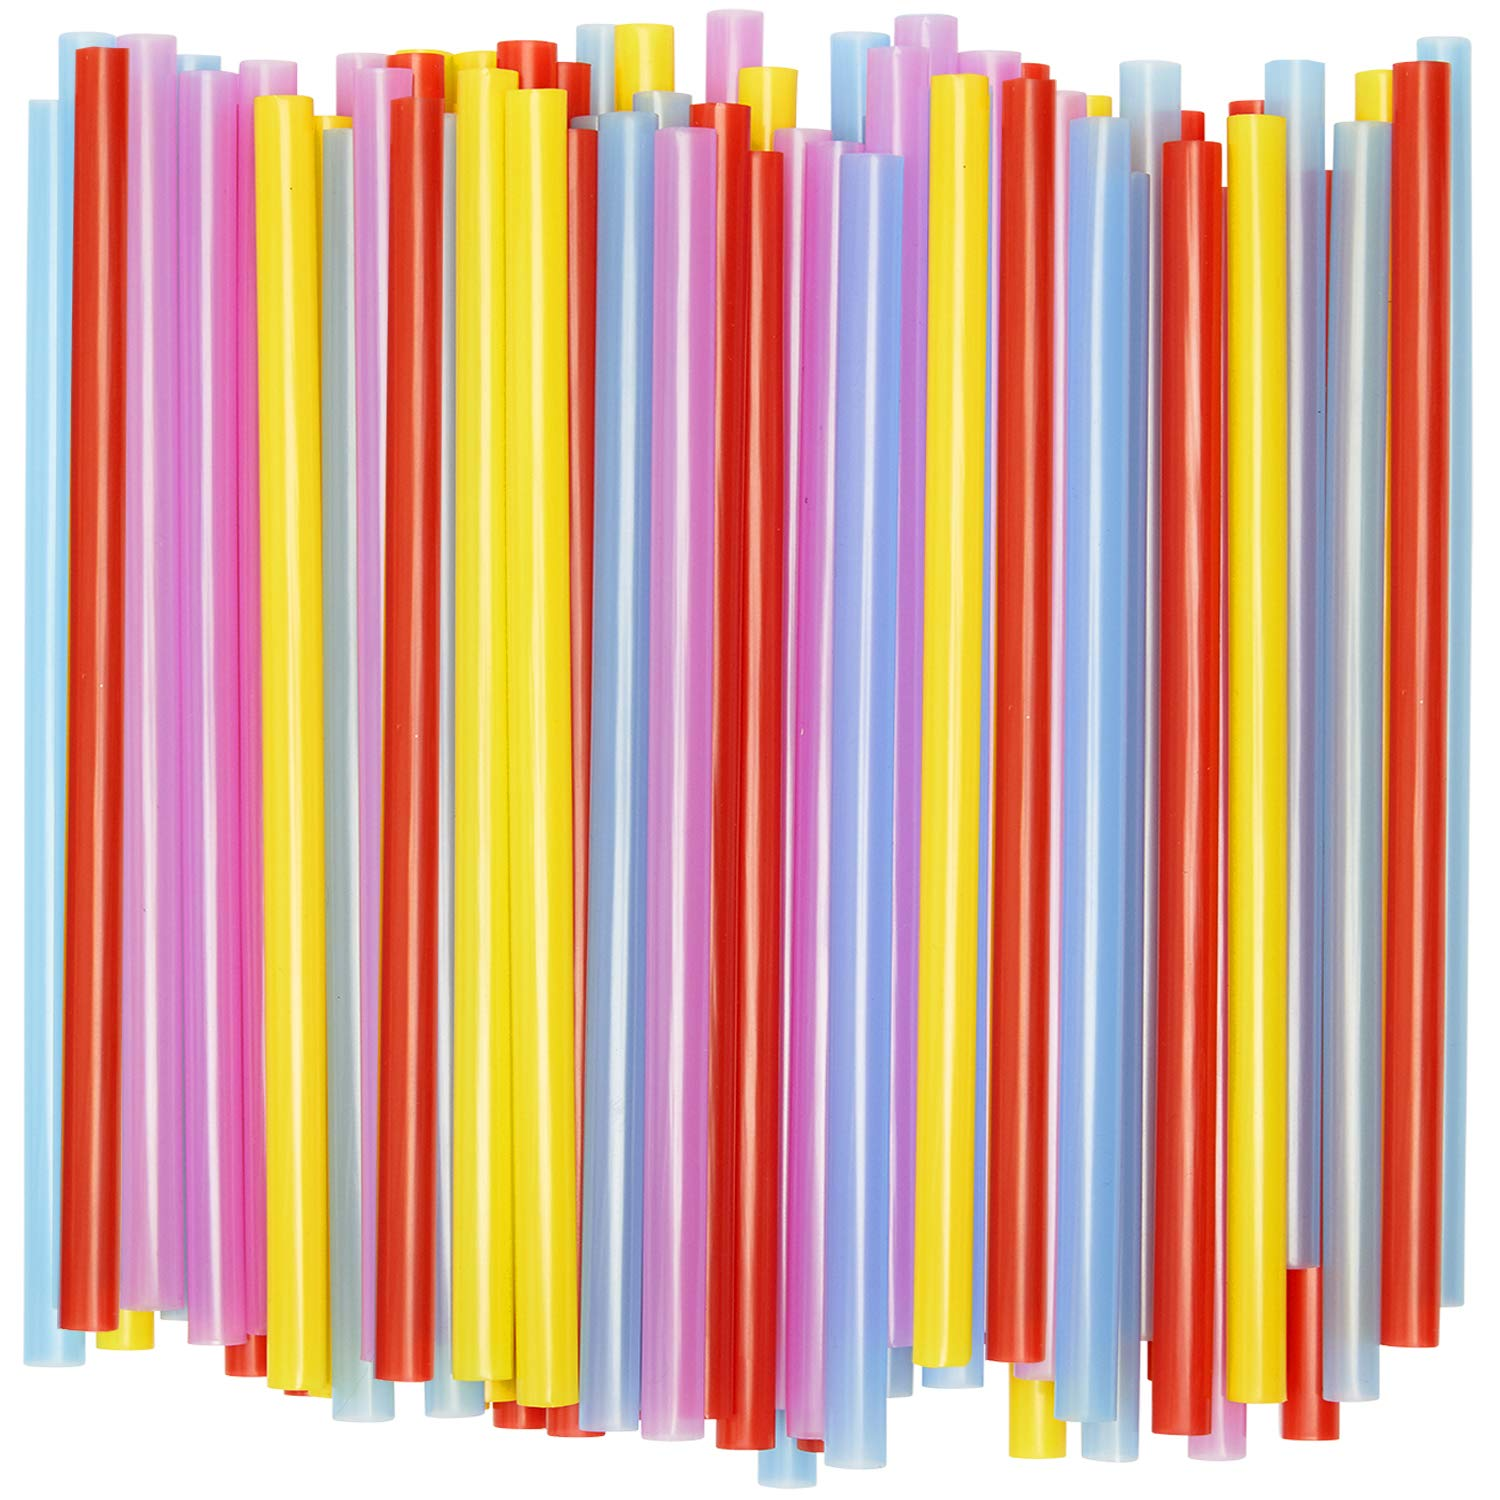 [100 Pack] Wide Smoothie Straws, Assorted Colors